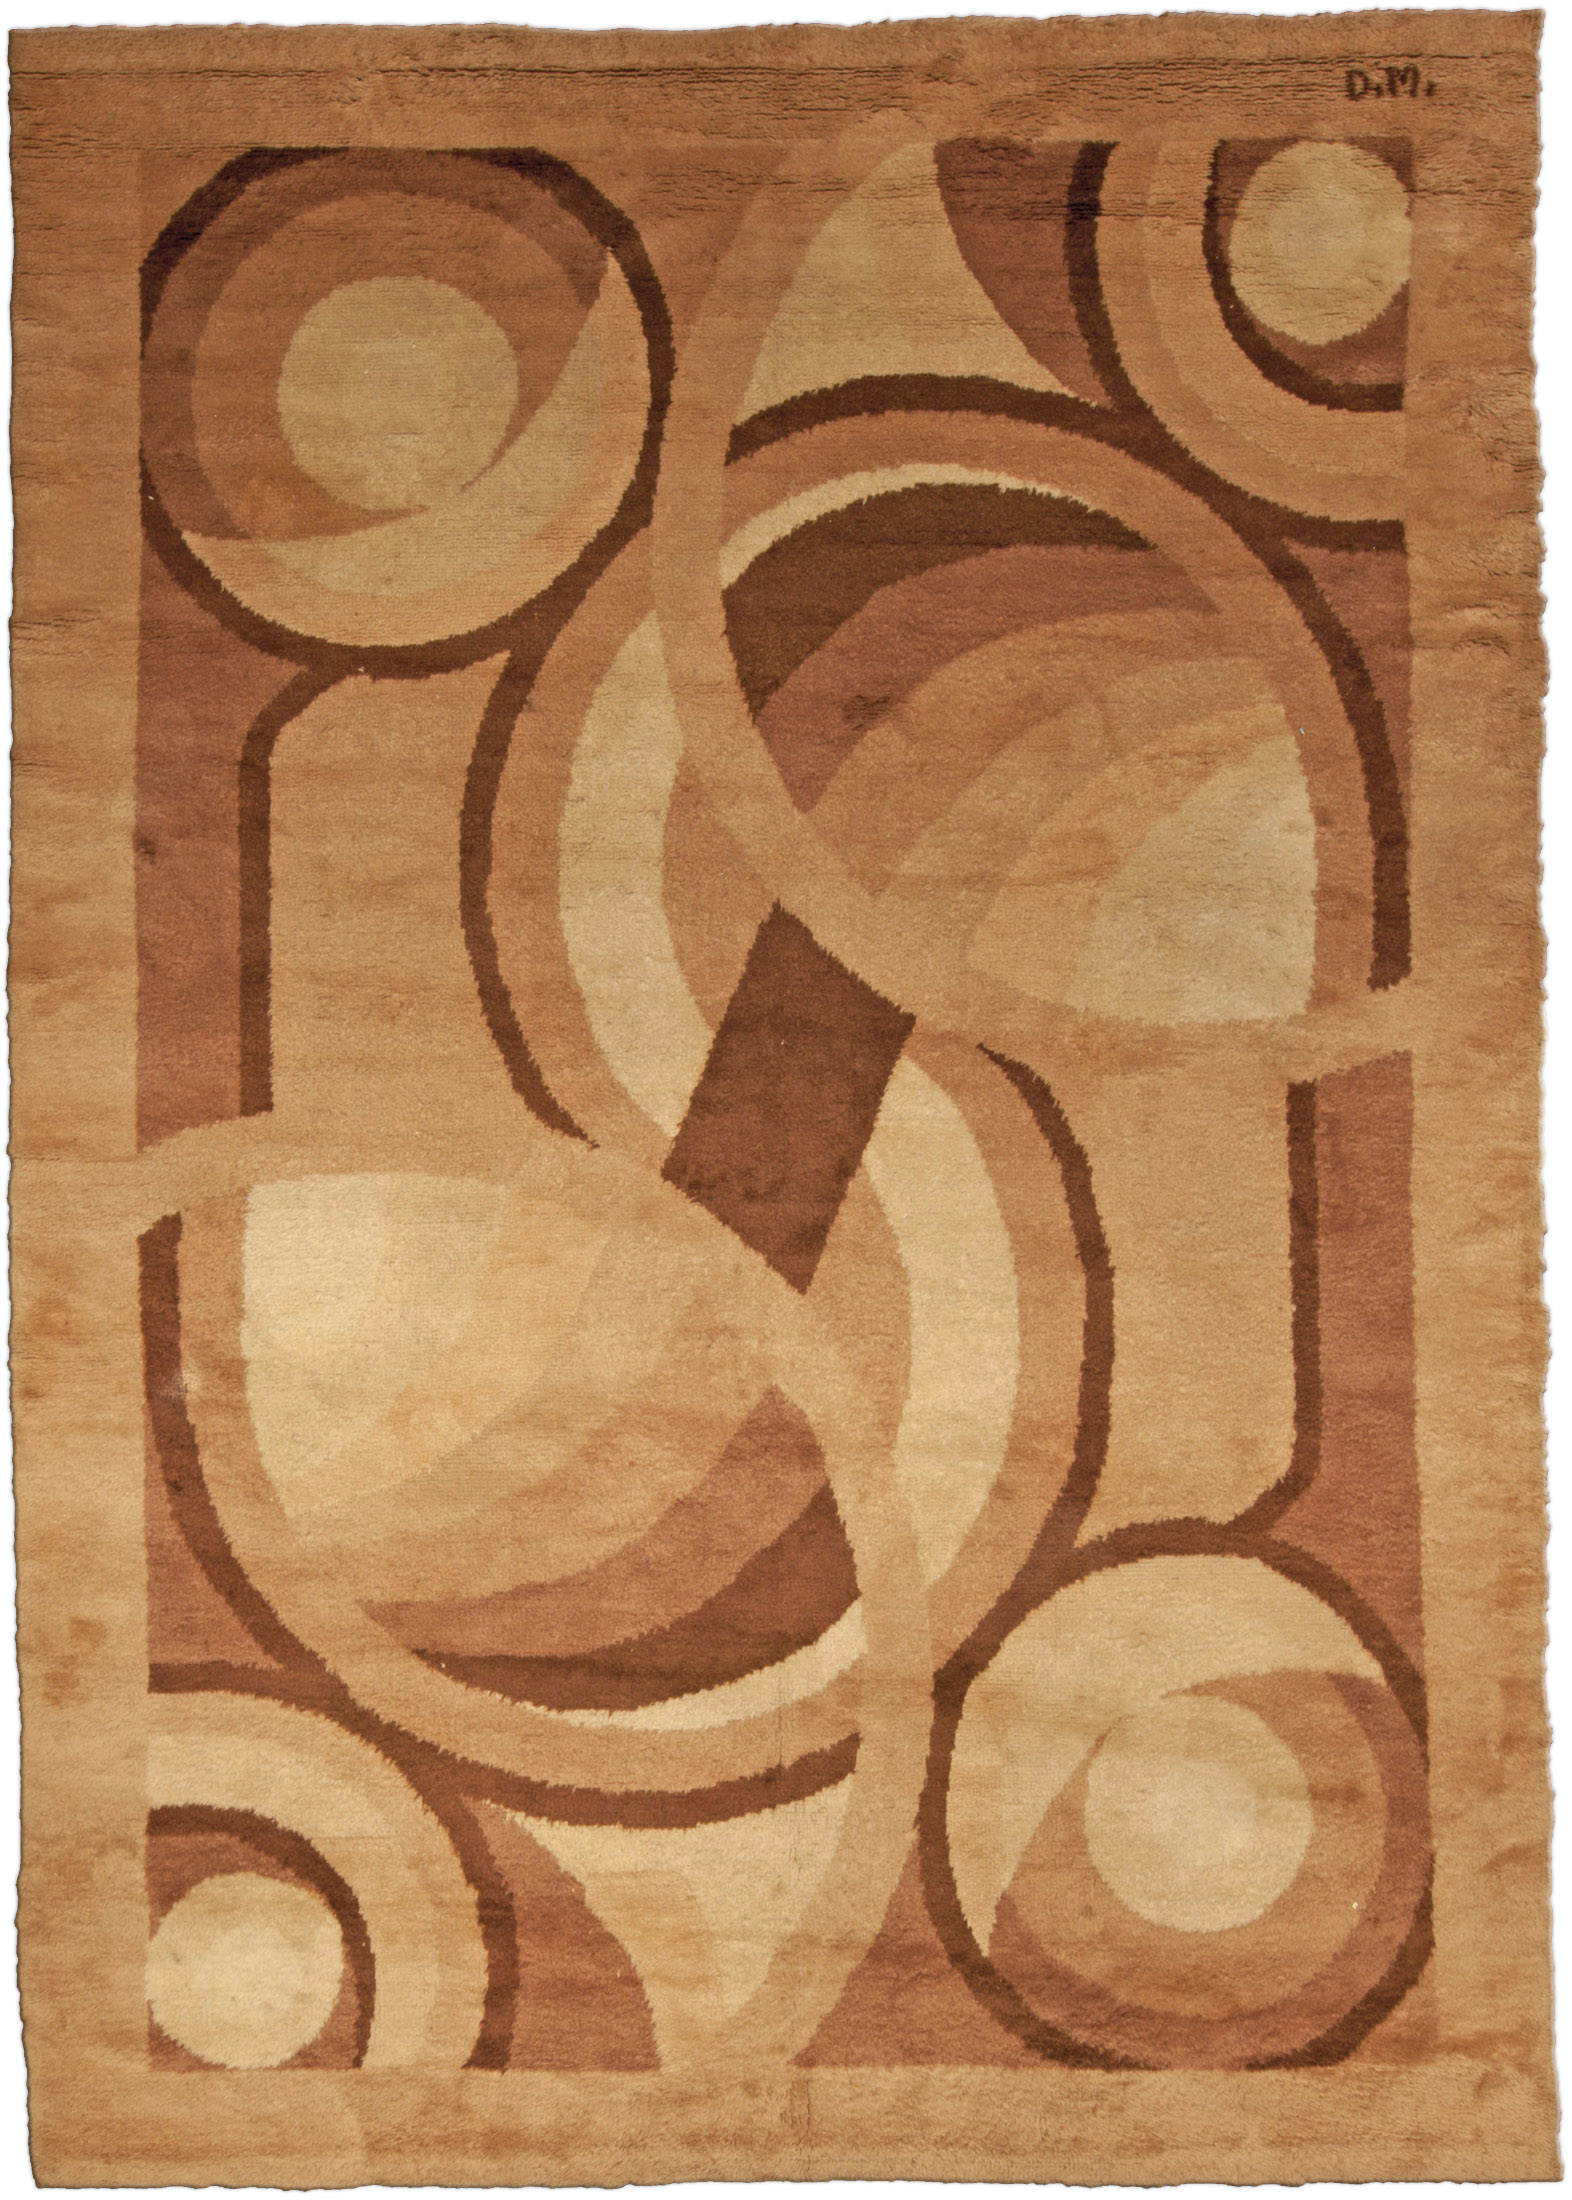 Vintage French Deco Rug by D.I.M. BB4794